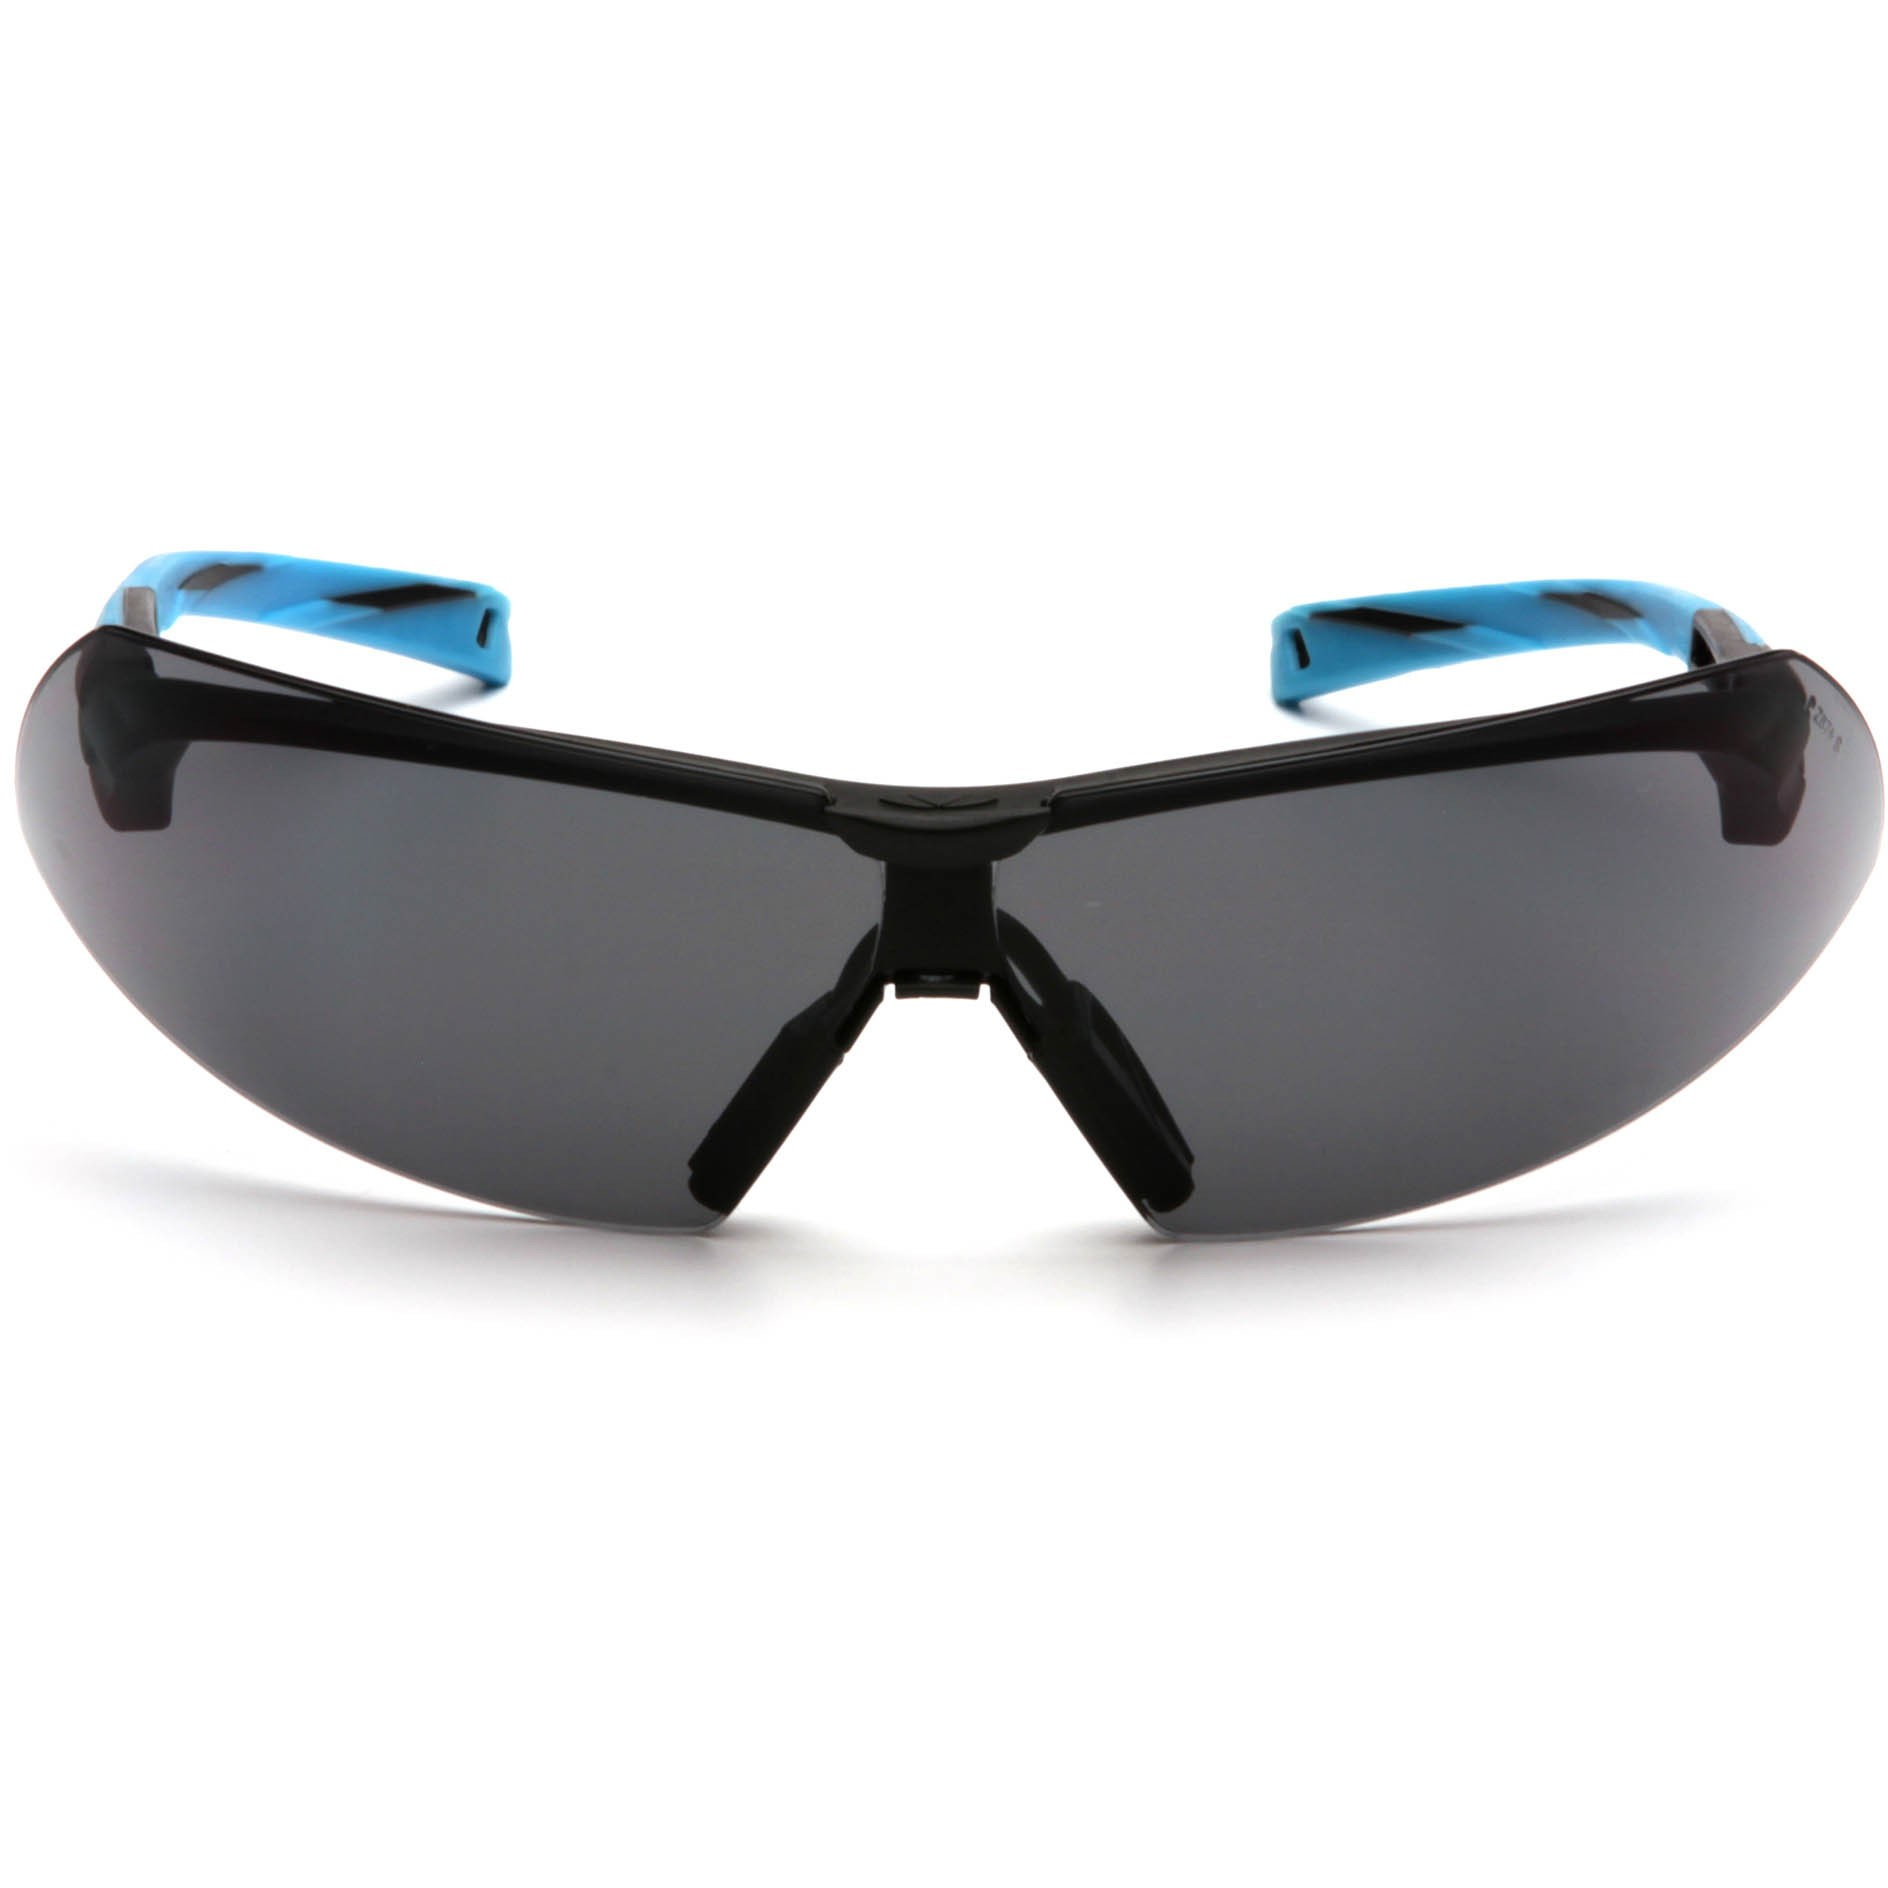 a55582ed494a5 Pyramex Onix Safety Glasses - Black Blue Frame - Gray Lens ...